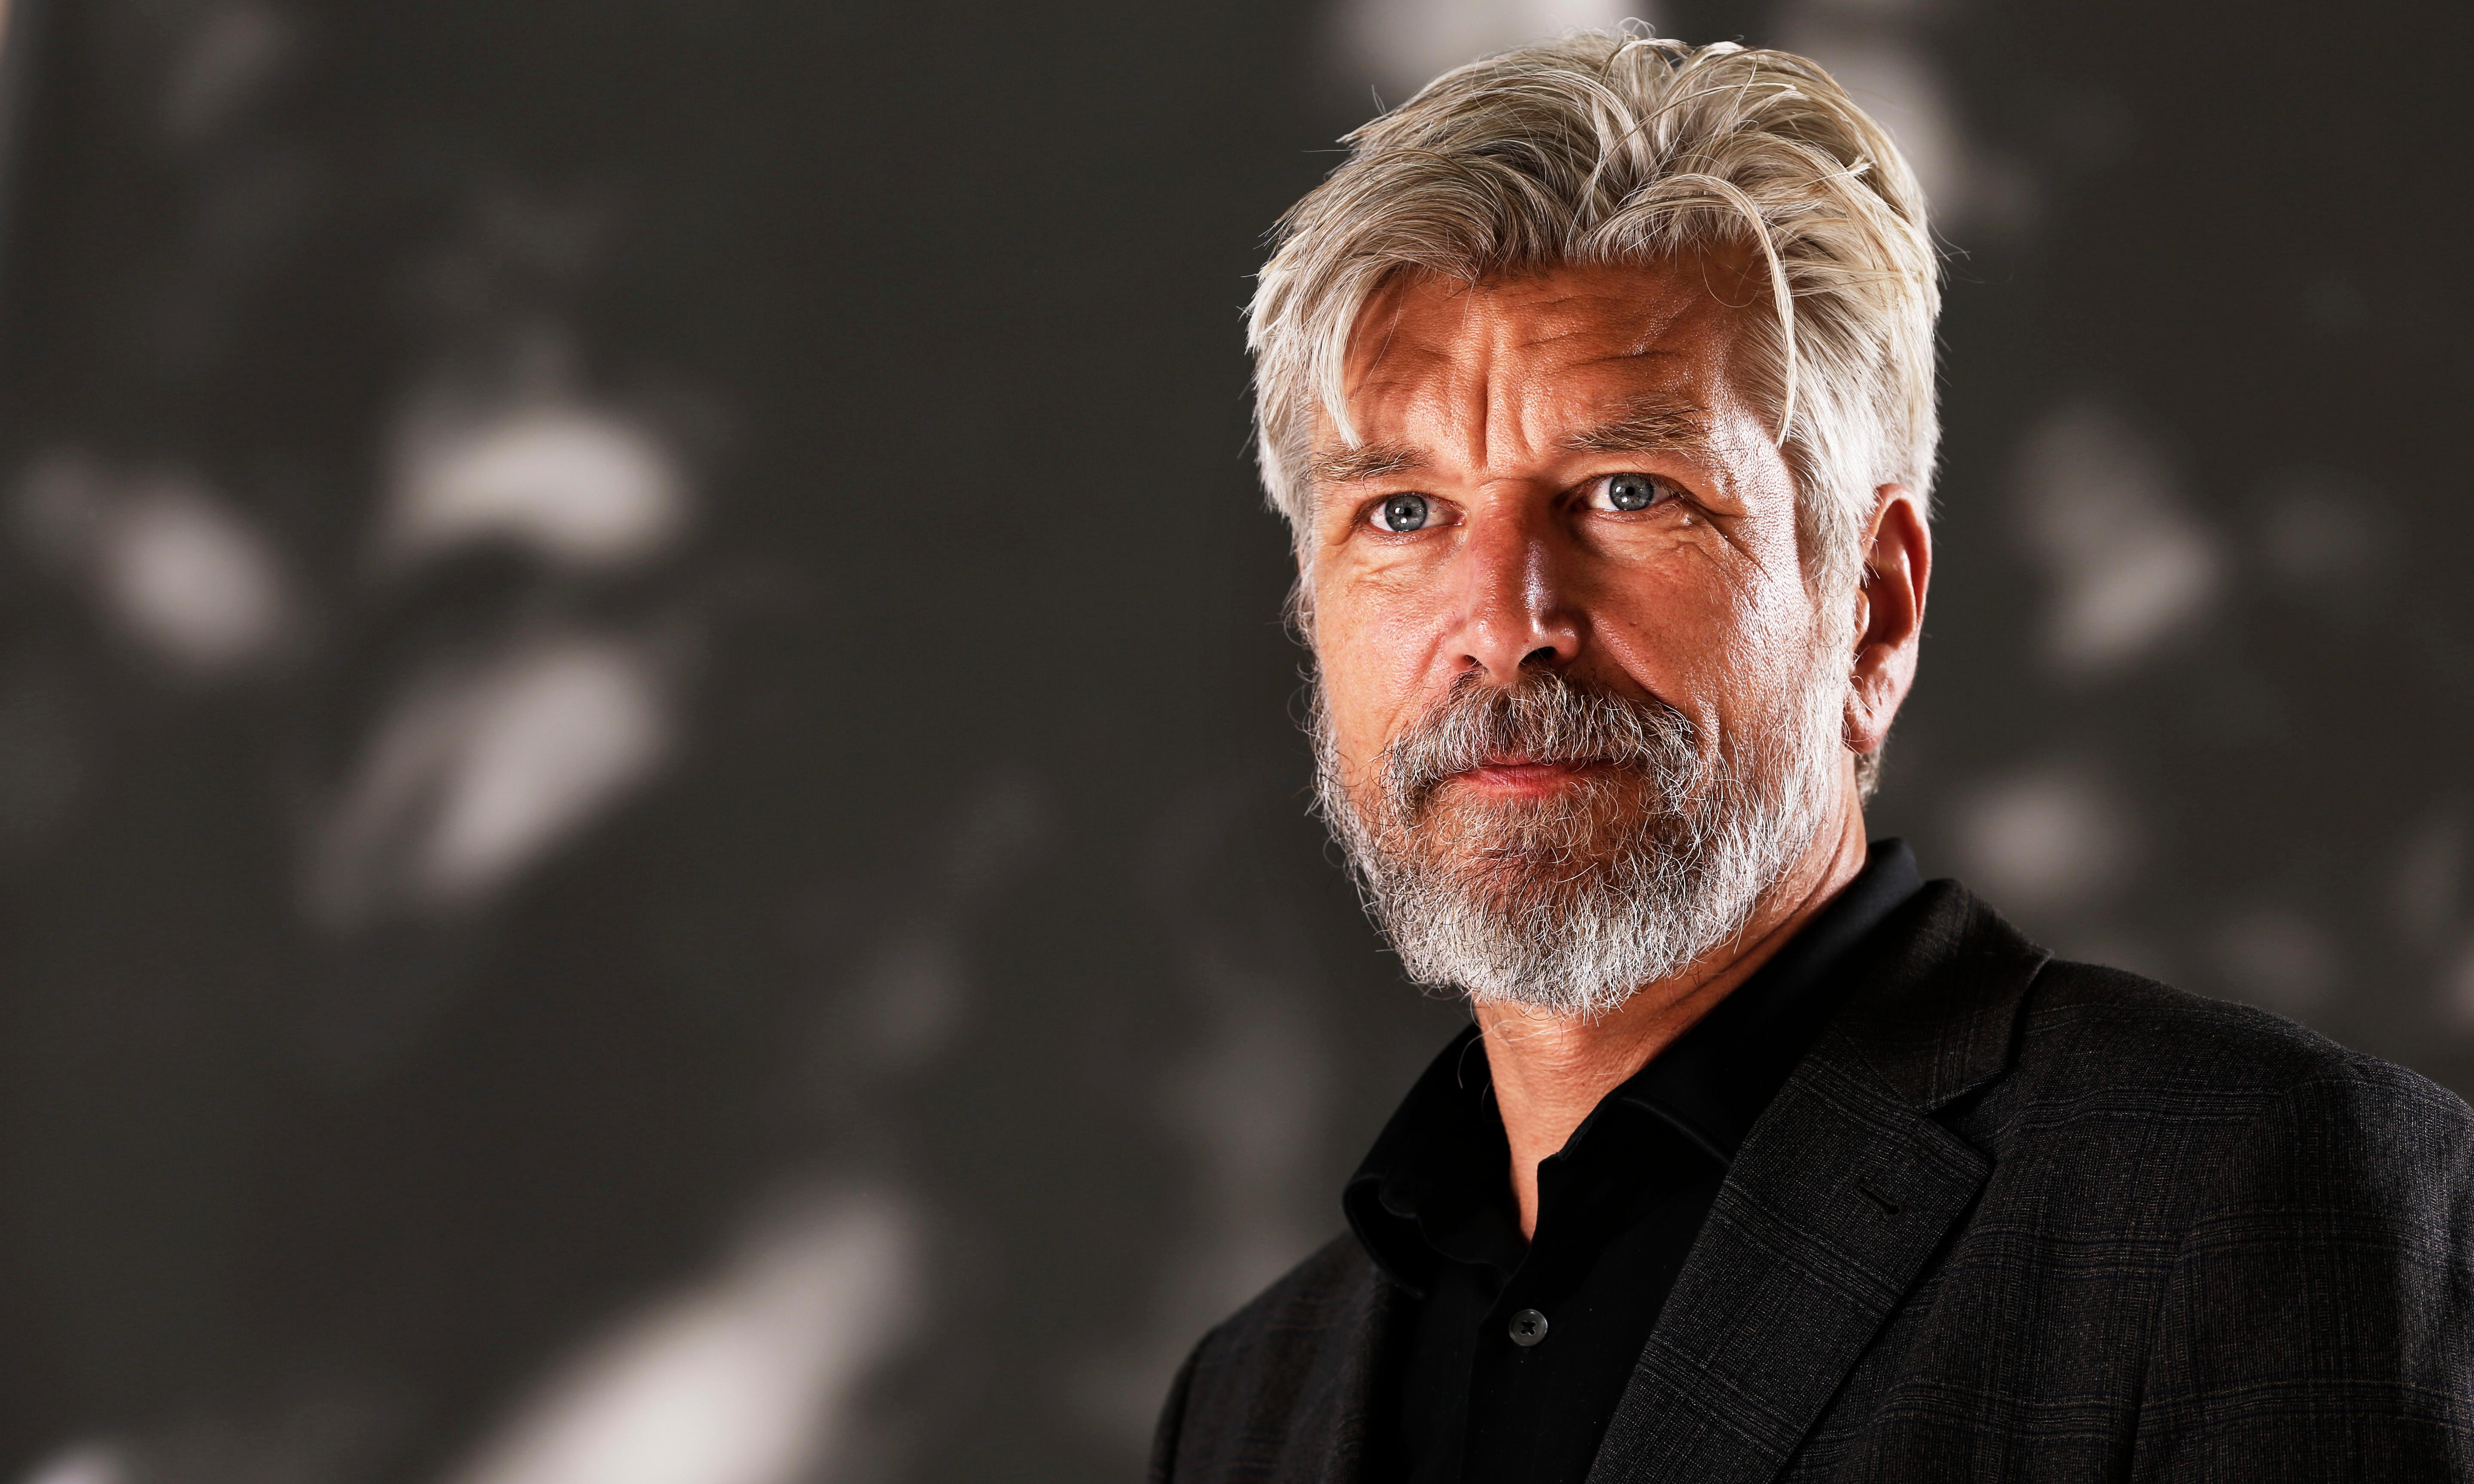 Karl Ove Knausgaard's latest work to remain unseen until 2114